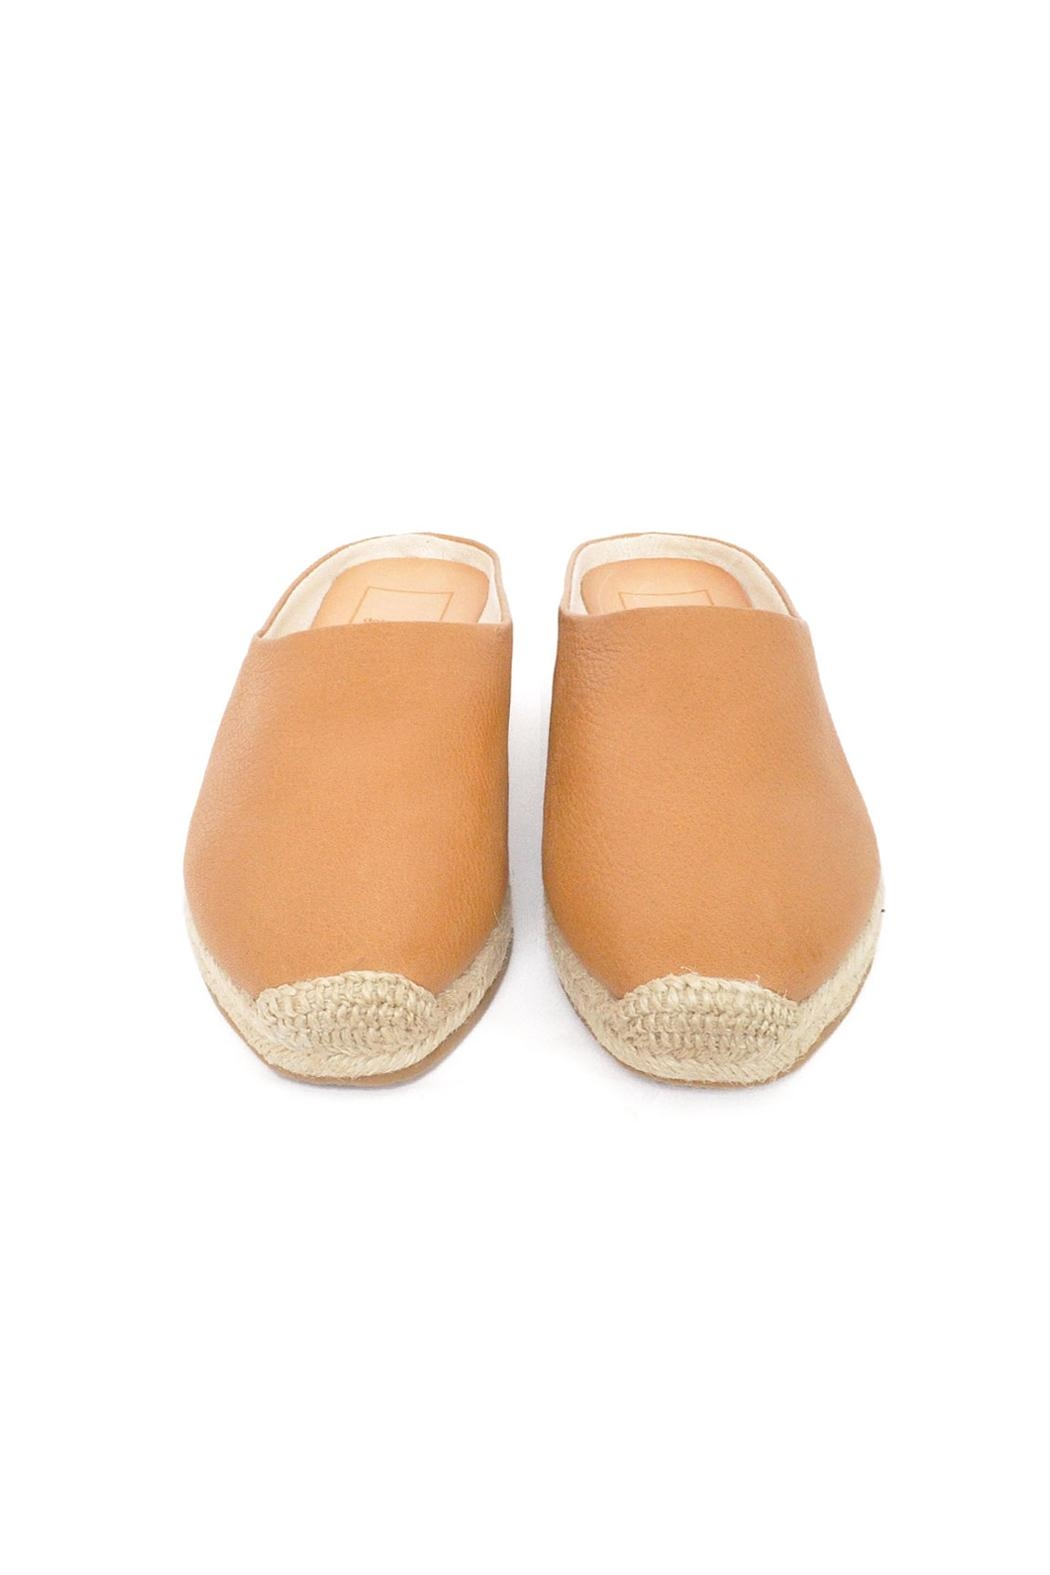 Dolce Vita Tan Leather Espadrilles - Side Cropped Image